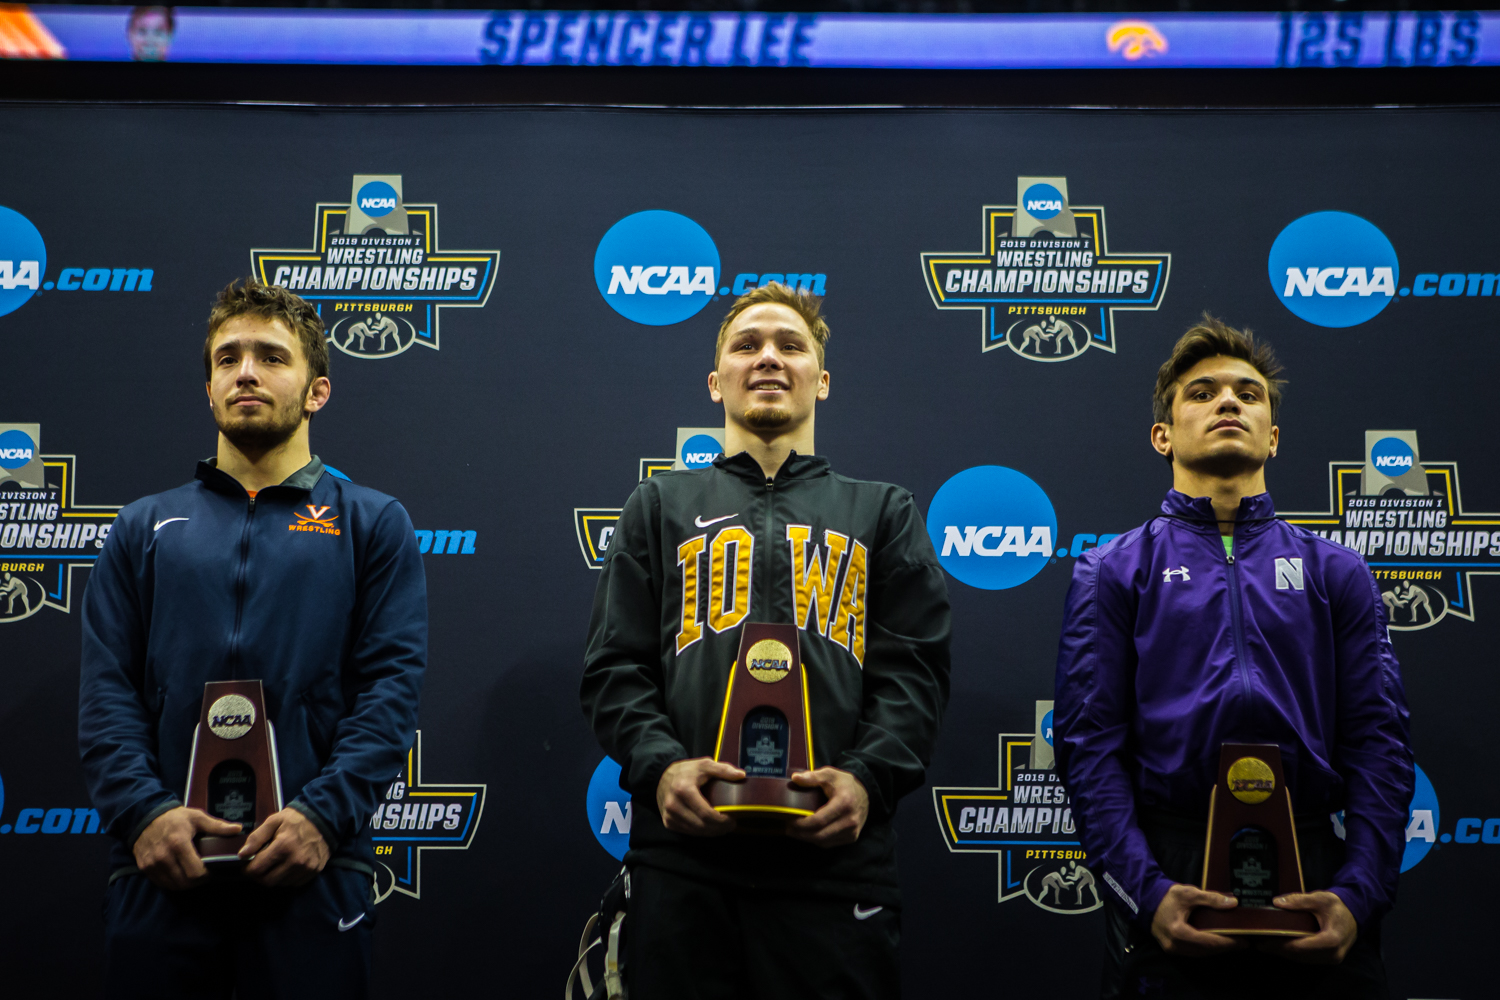 Iowa%27s+Spencer+Lee+holds+the+first-place+trophy+for+the+125-pound+weight+class+during+the+final+session+of+the+2019+NCAA+D1+Wrestling+Championships+at+PPG+Paints+Arena+in+Pittsburgh%2C+PA+on+Saturday%2C+March+23%2C+2019.